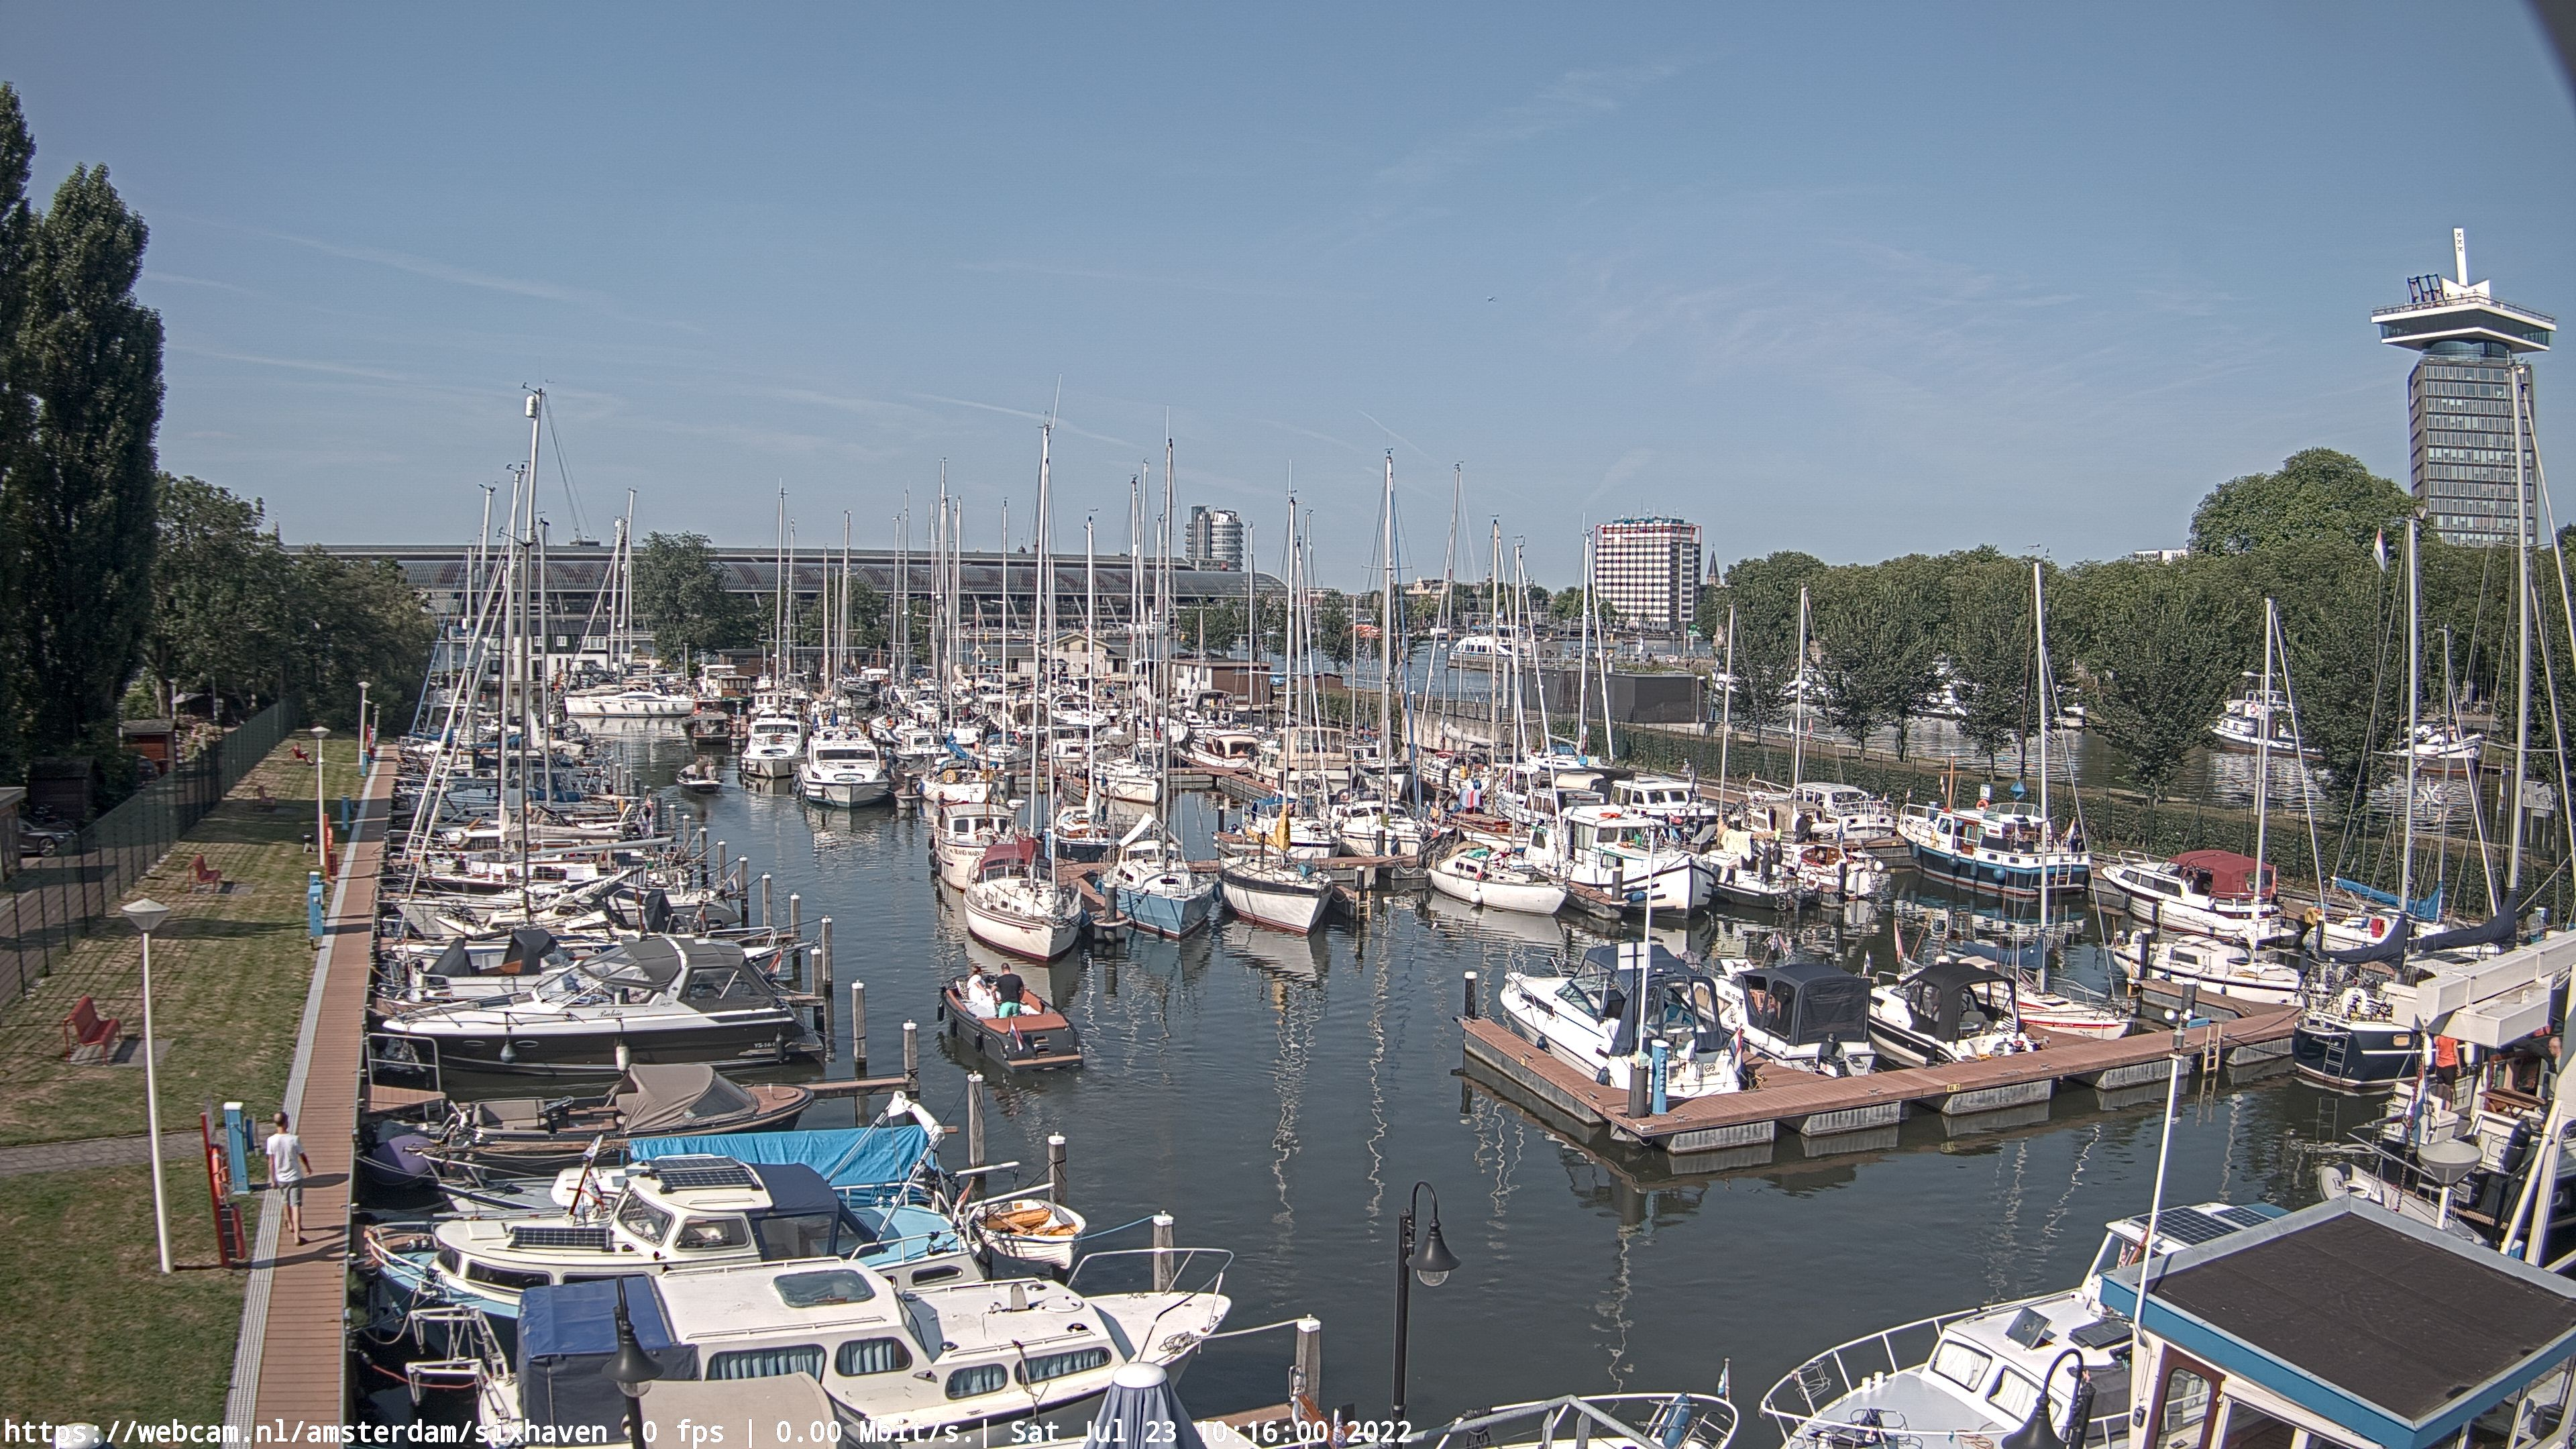 WebCam.NL | LIVE ultraHD 4K camera Sixhaven Amsterdam.